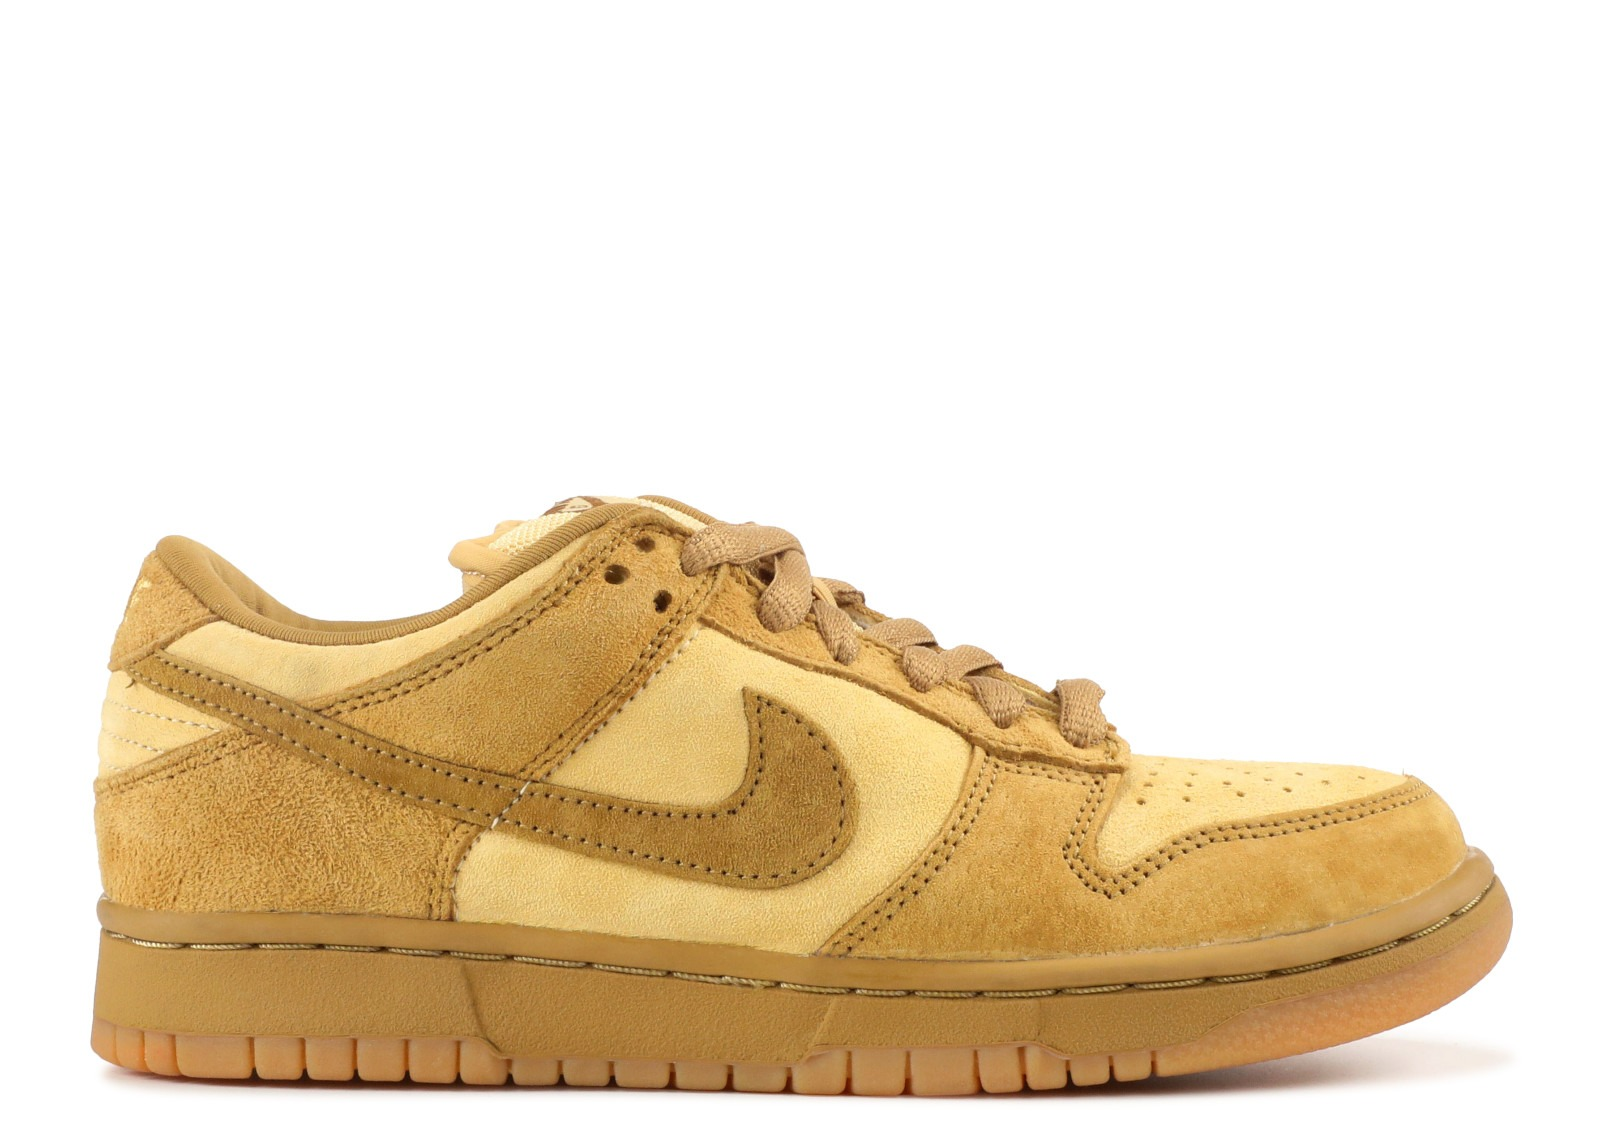 Top 10 Best Nike SB Dunks Of All Time - Reese Forbes